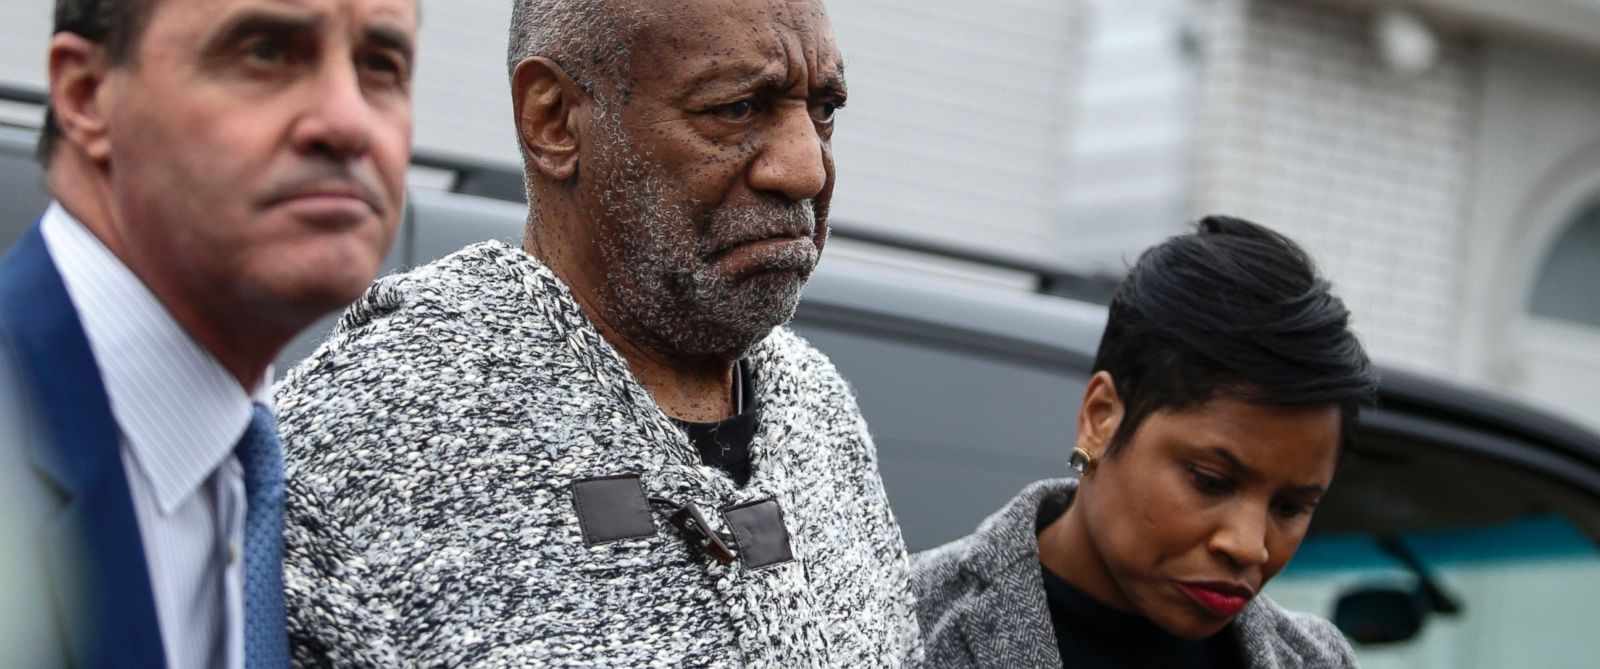 PHOTO: Bill Cosby arrives Dec. 30, 2015 at the courthouse in Elkins Park, Pa., to face charges of aggravated indecent assault.